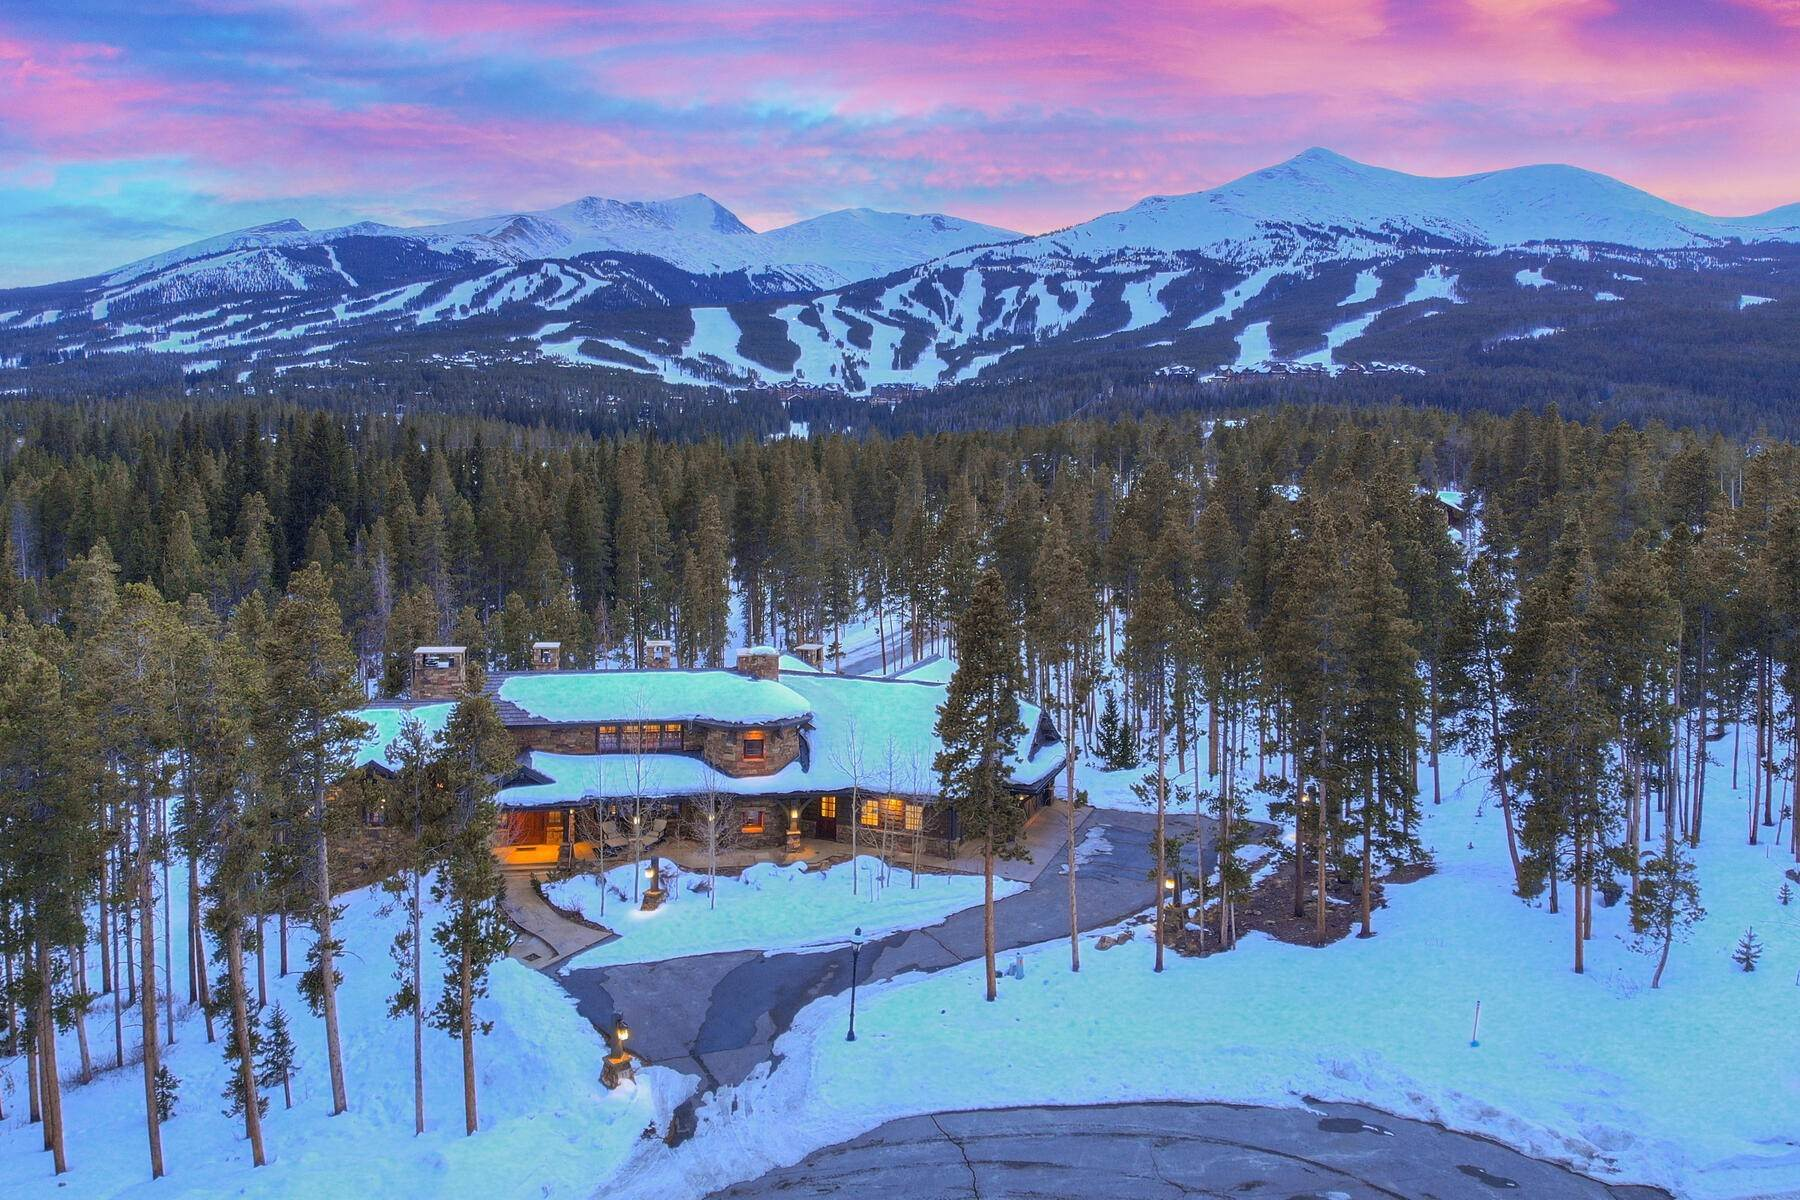 Single Family Homes for Sale at A true family legacy home. 33 Iron Mask Road Breckenridge, Colorado 80424 United States